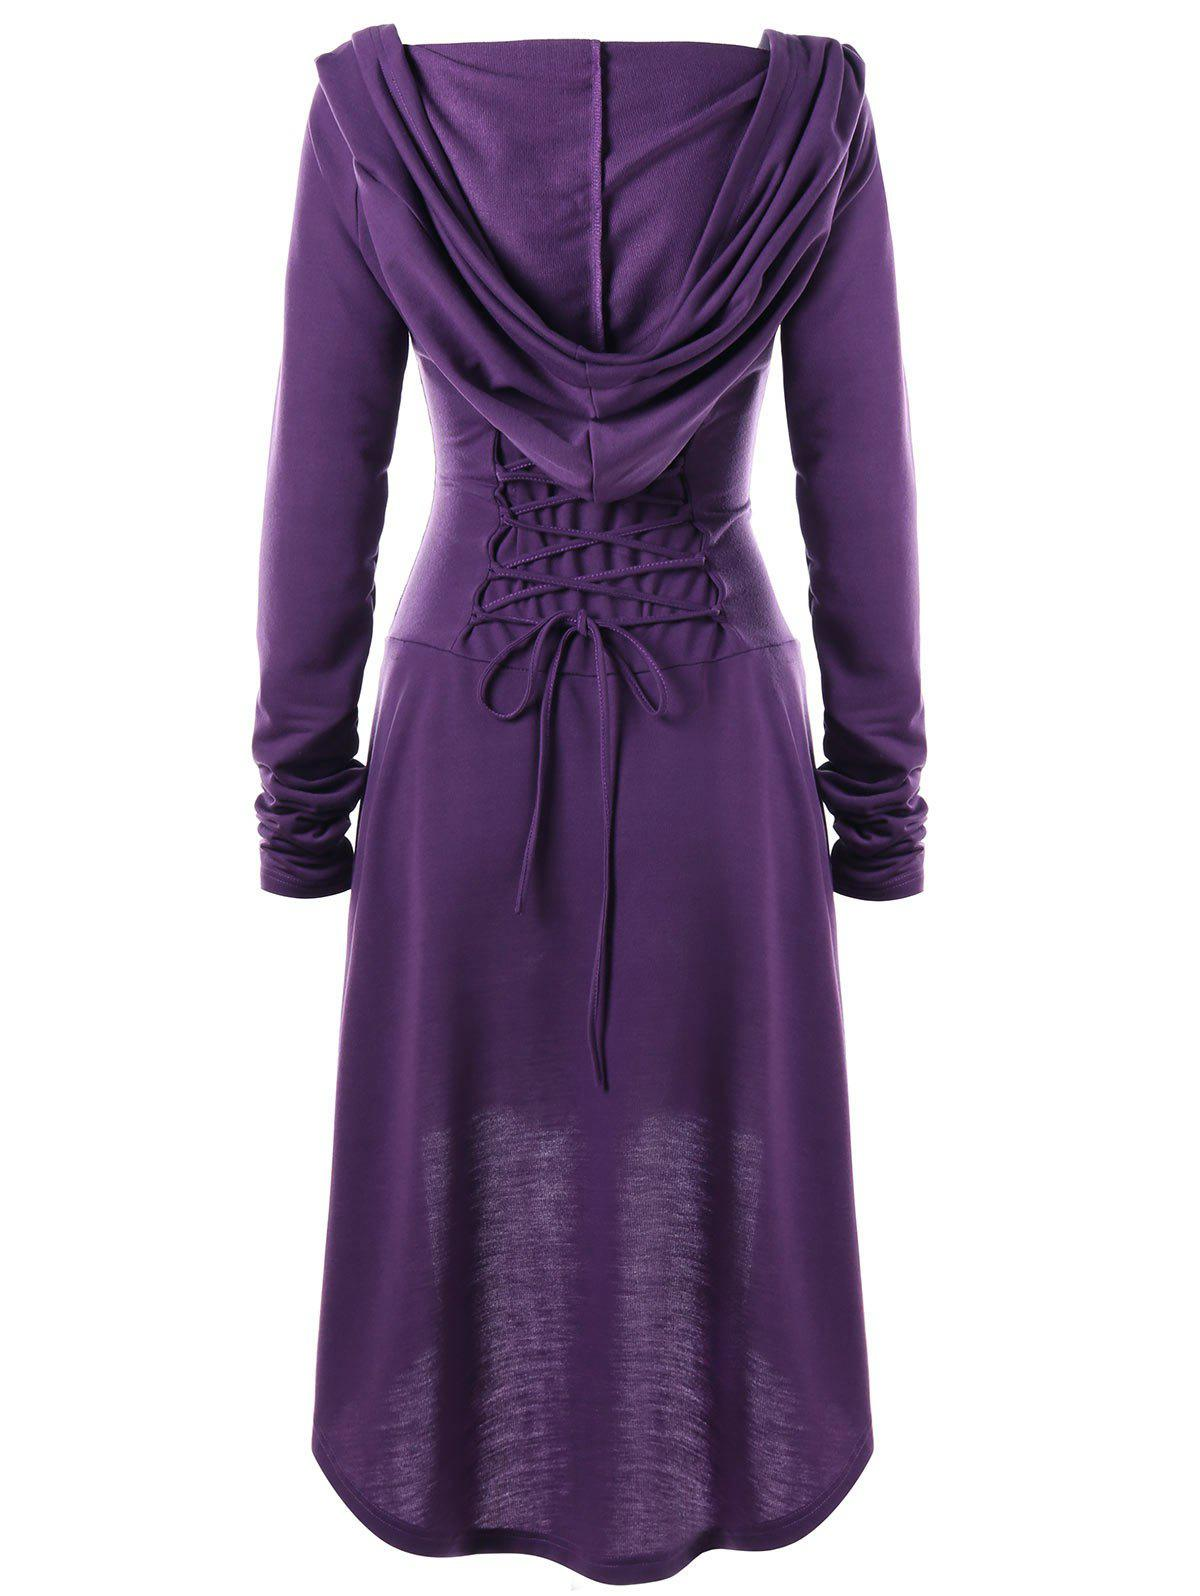 Lace Up Hooded High Low Dress - PURPLE M